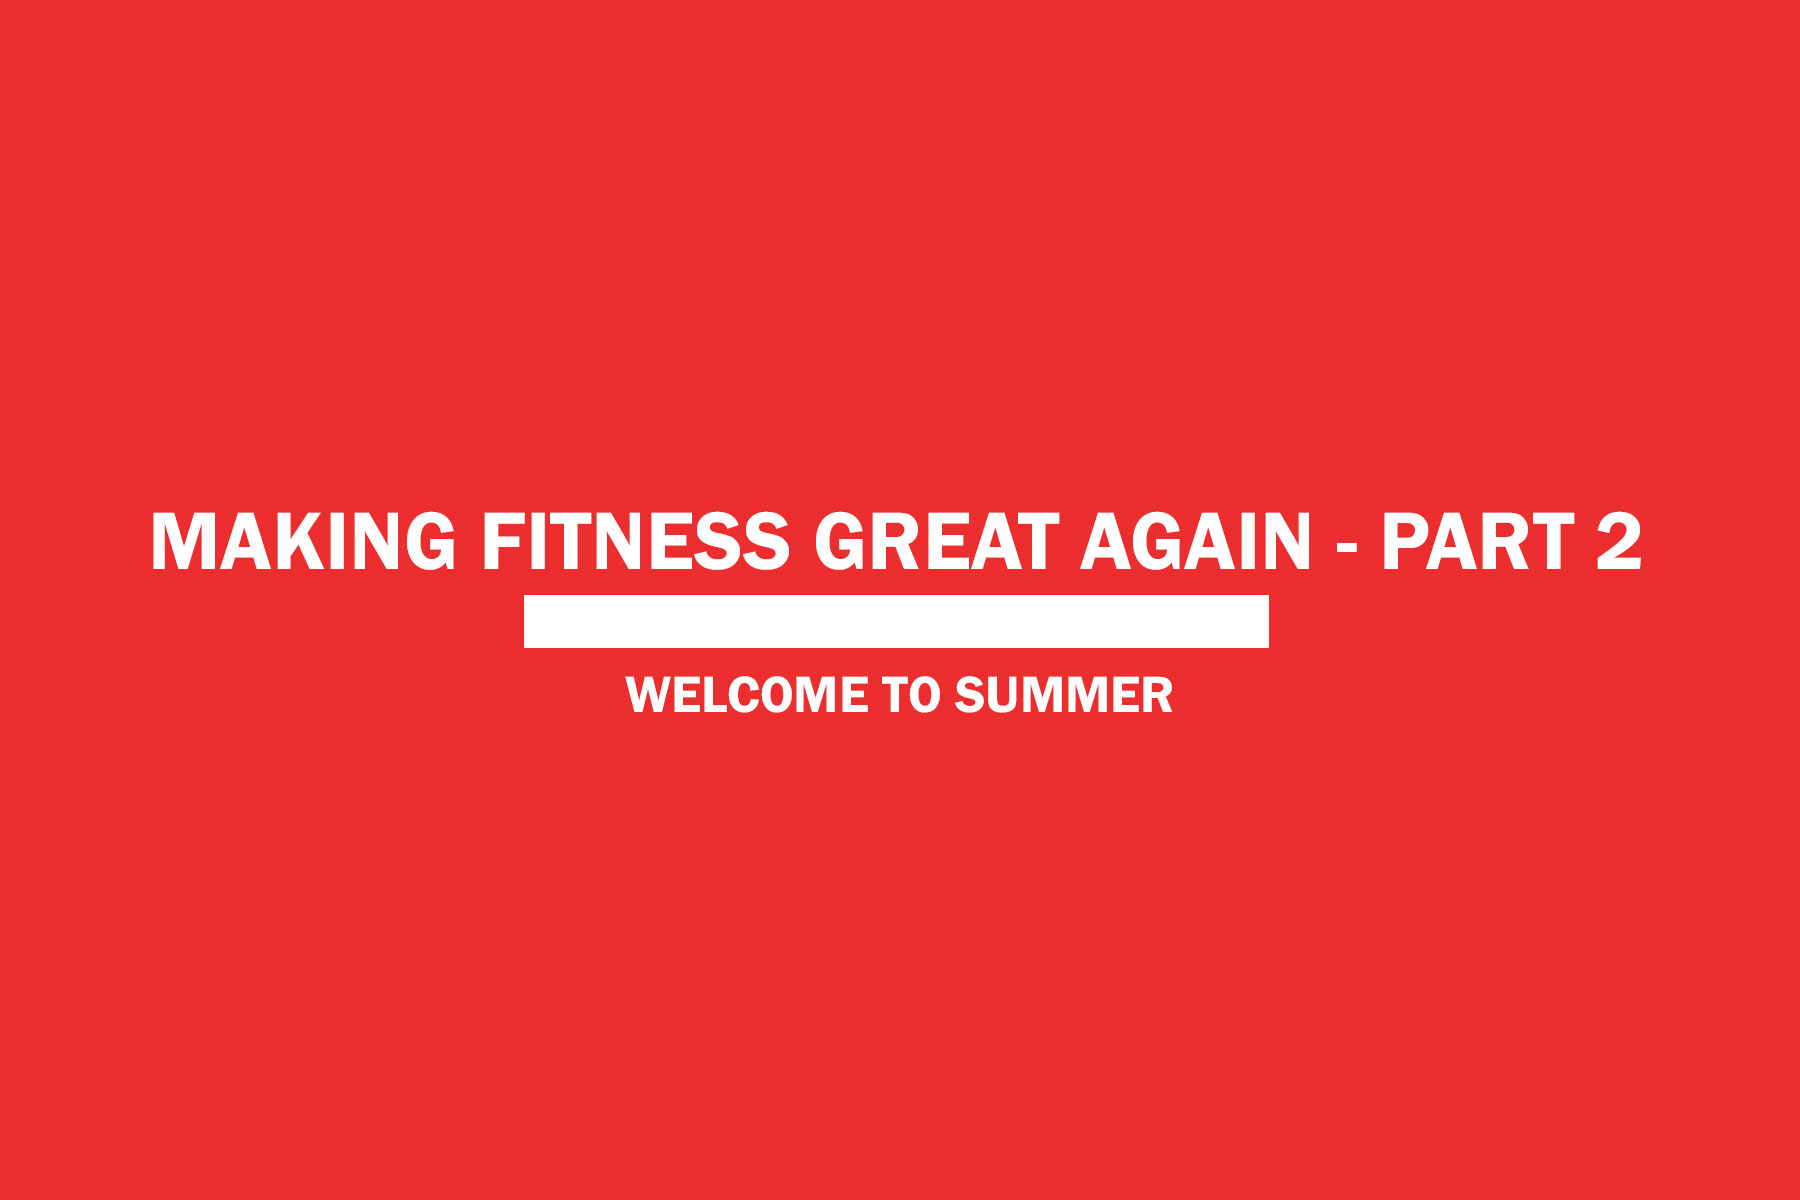 Making Fitness Great Again – Part 2